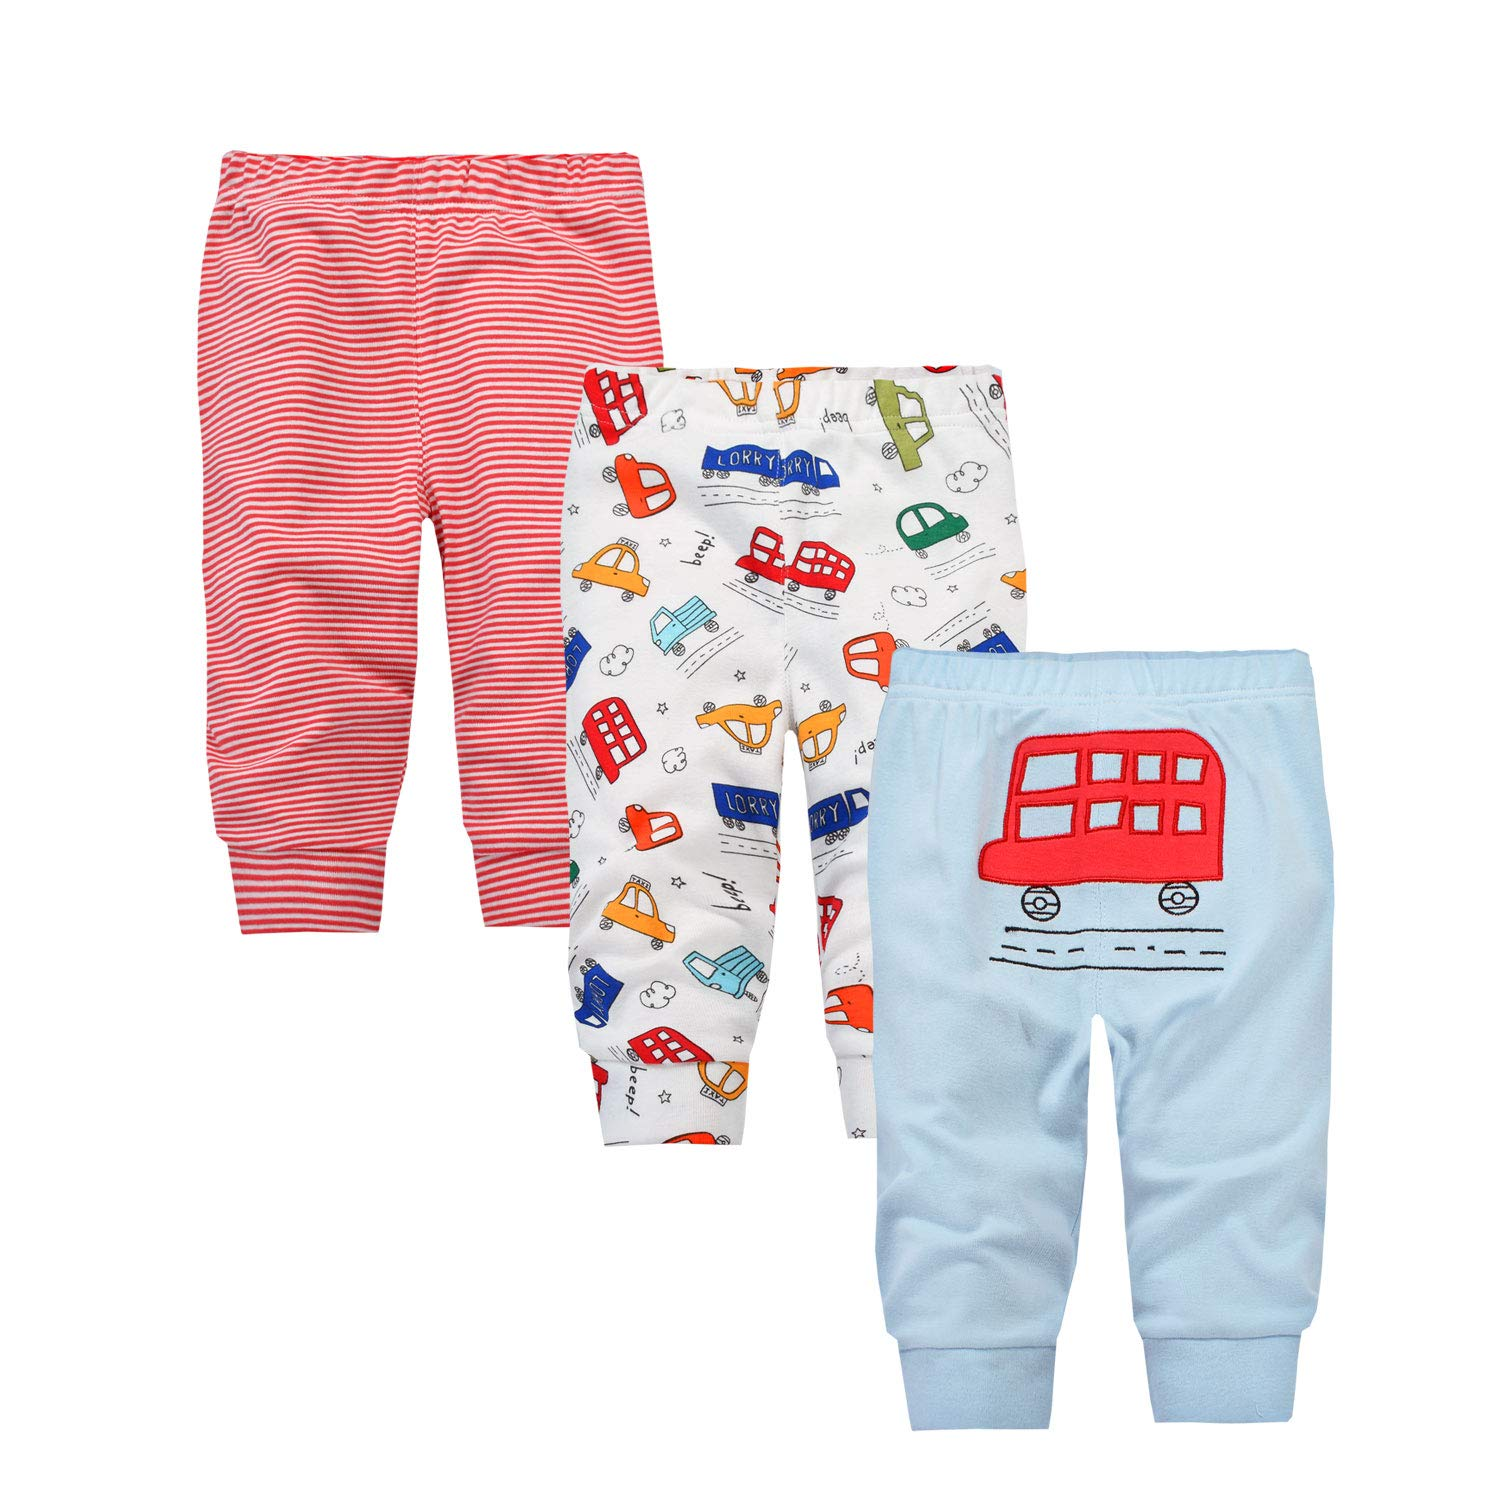 Baby Jogger Pants Flexy Adjustable Fit Knit for 6-36 Months 1-3 Packs